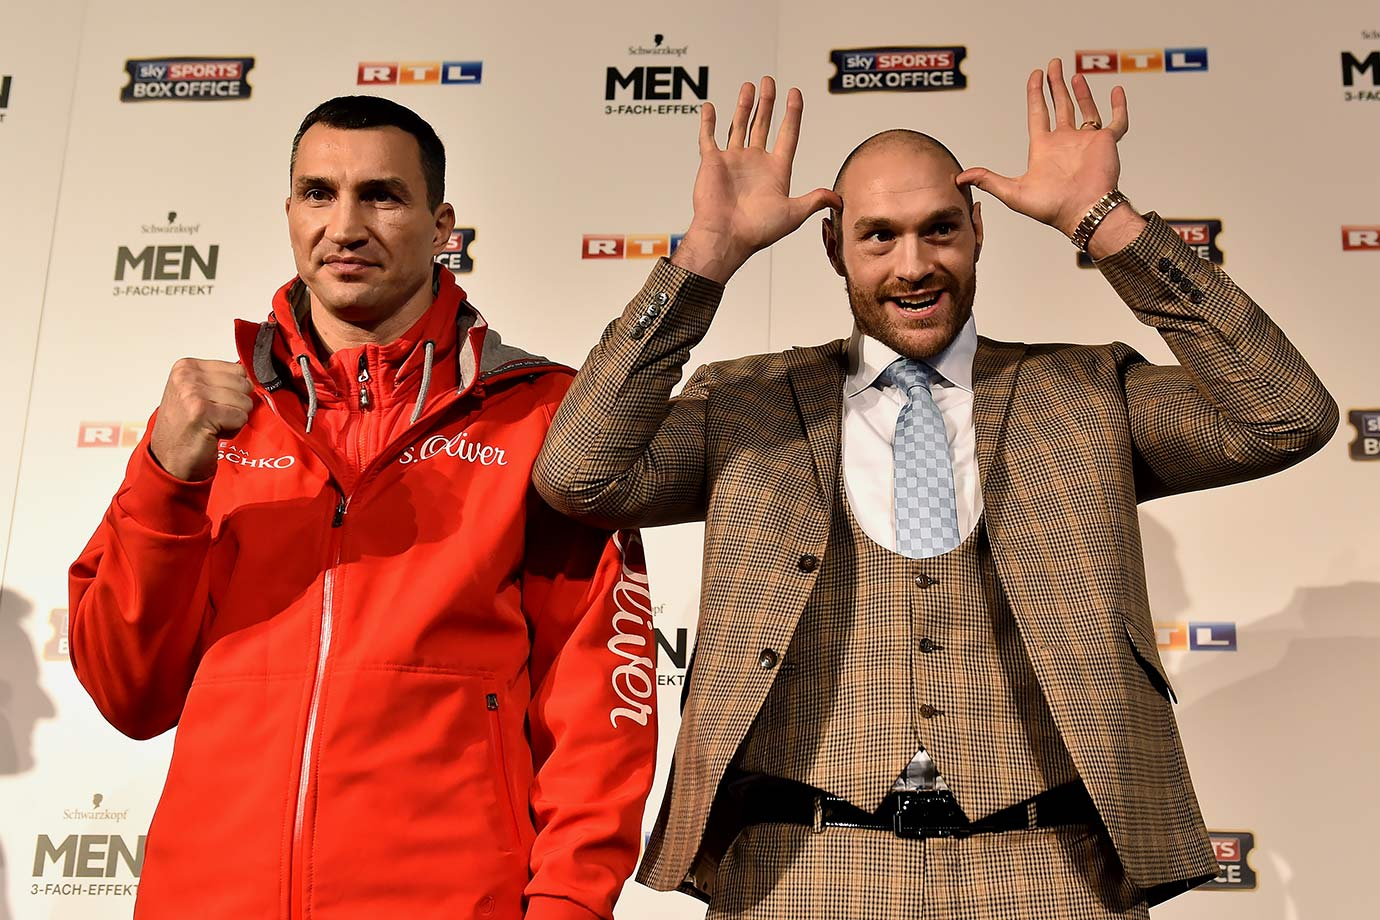 Intimidation is always key during any pre-fight press conference, as evident by Tyson Fury's menacing stare alongside Wladimir Klitschko.